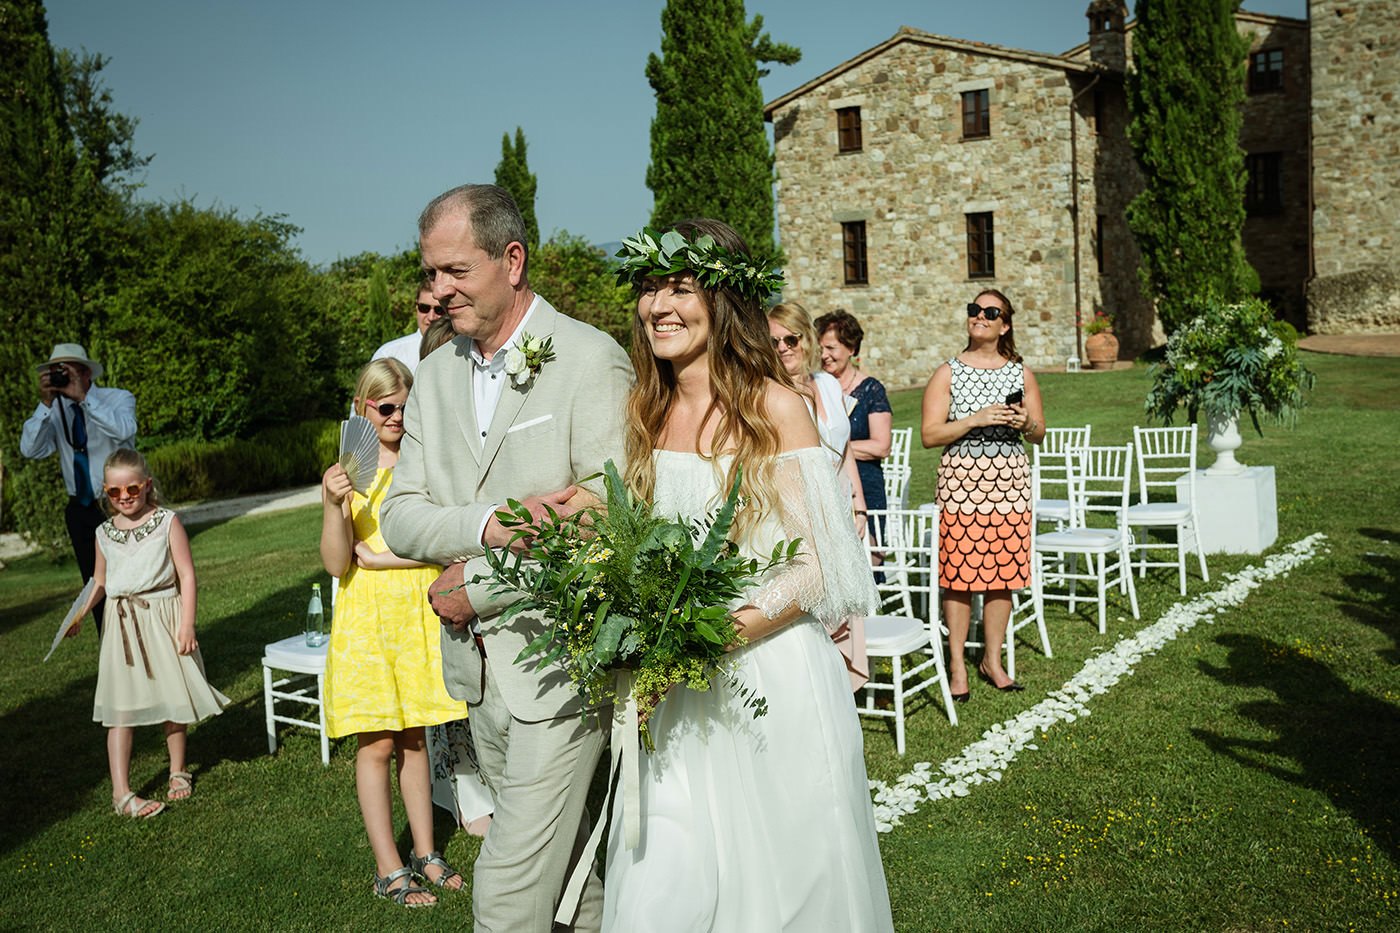 Duccio Argentini Photography: Umbria Wedding Photographer